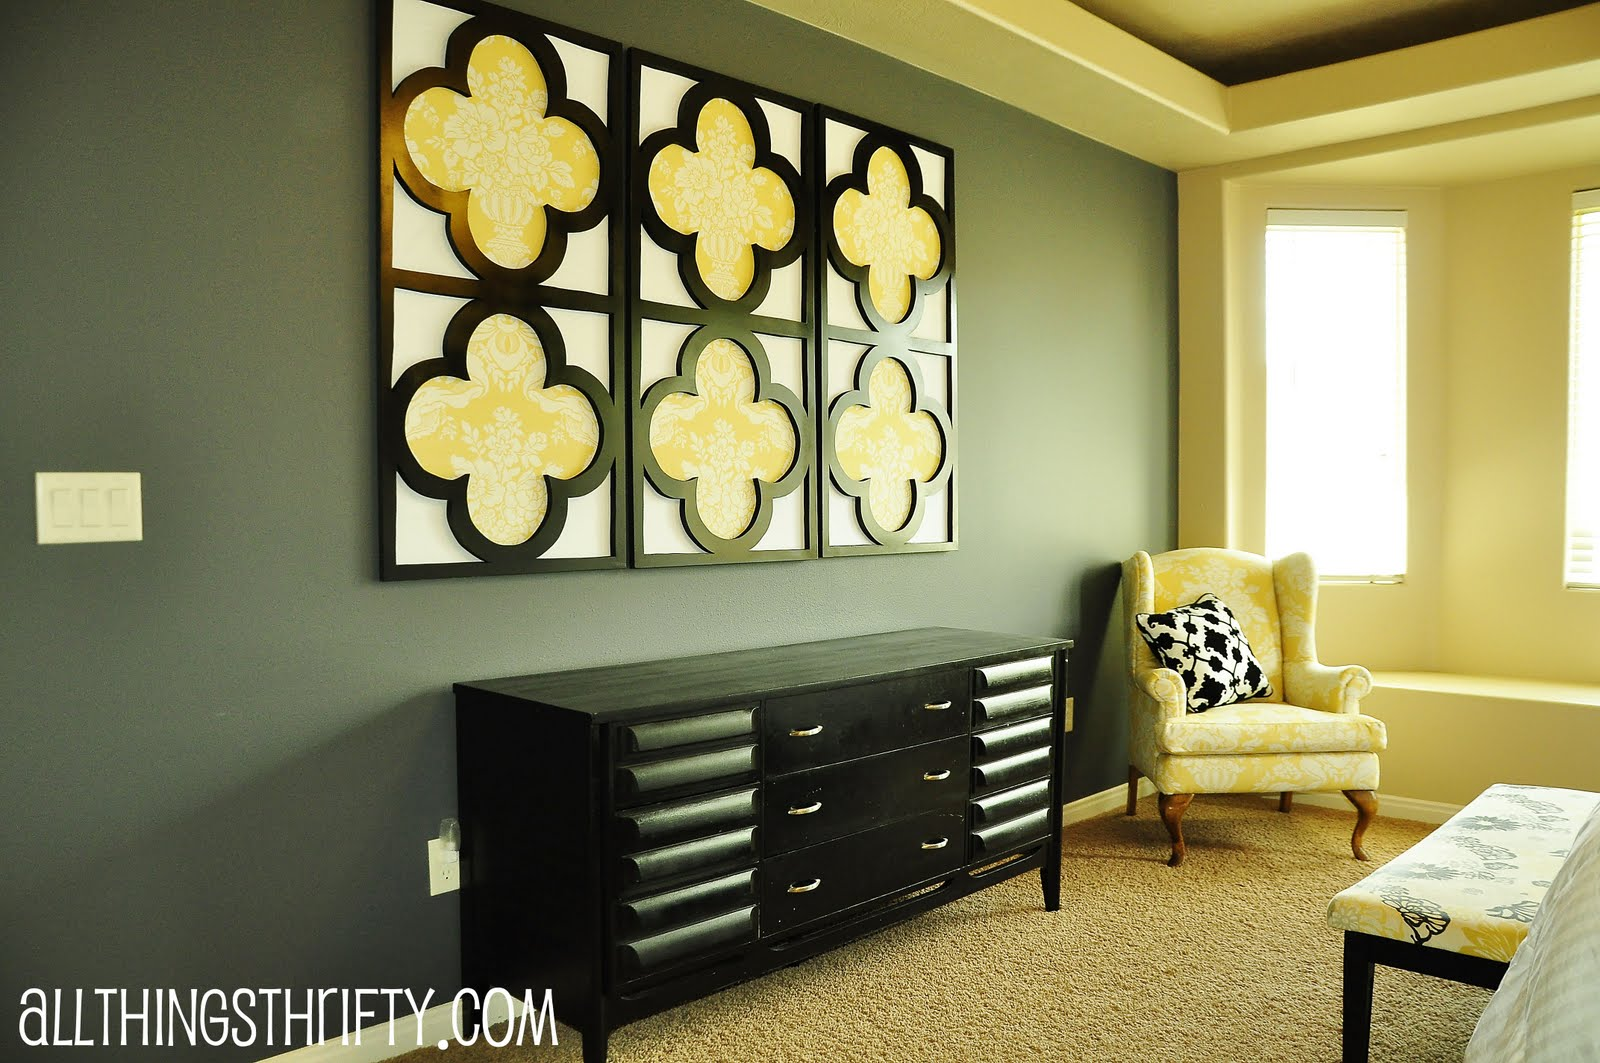 Tutorial quatrefoil diy decorative wall art - Wall decor diy ...